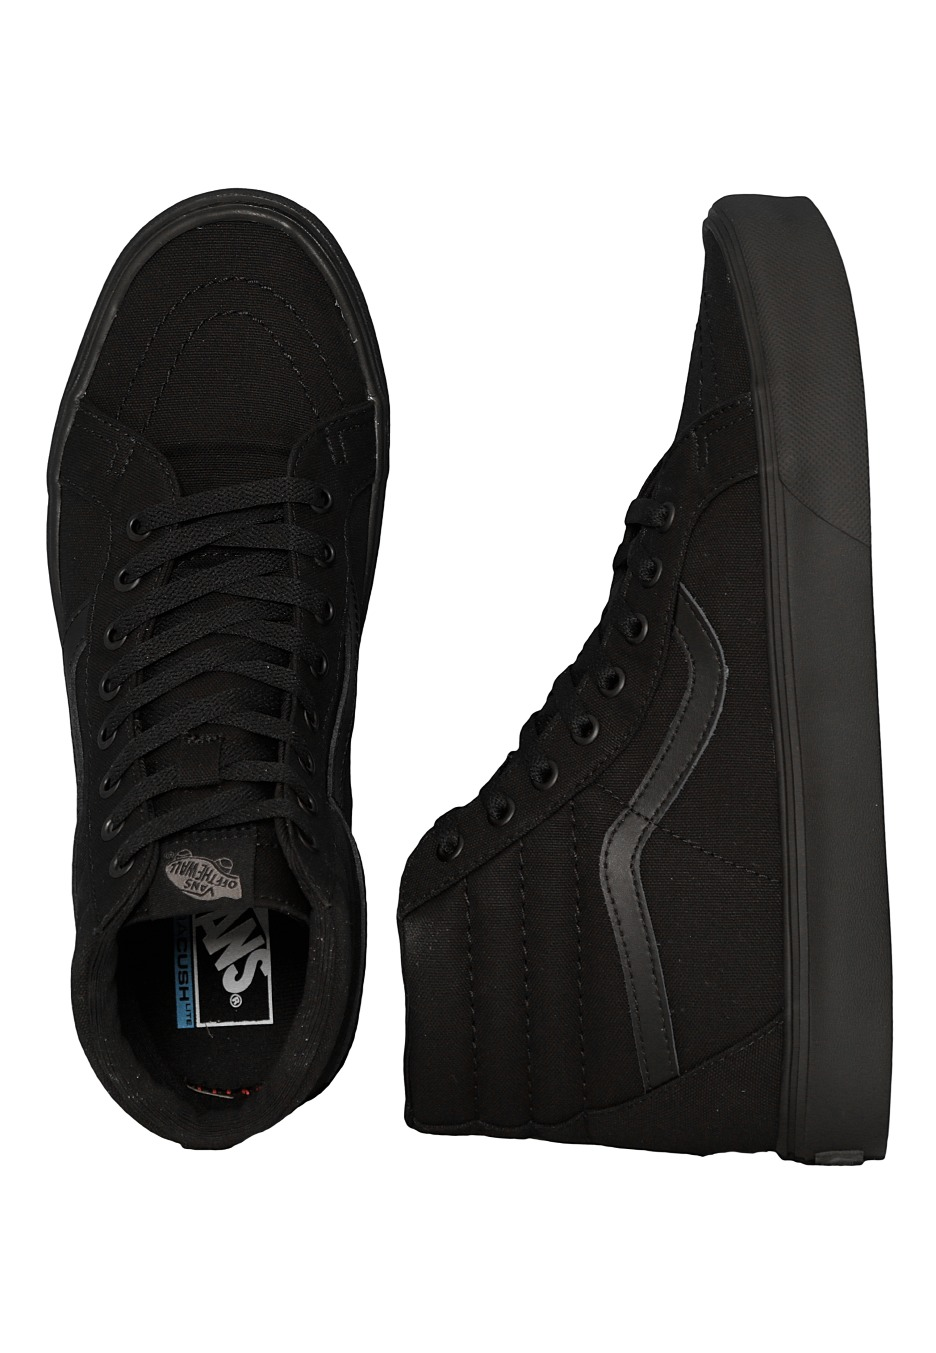 Vans - Sk8-Hi Lite + Canvas Black/Black - Shoes